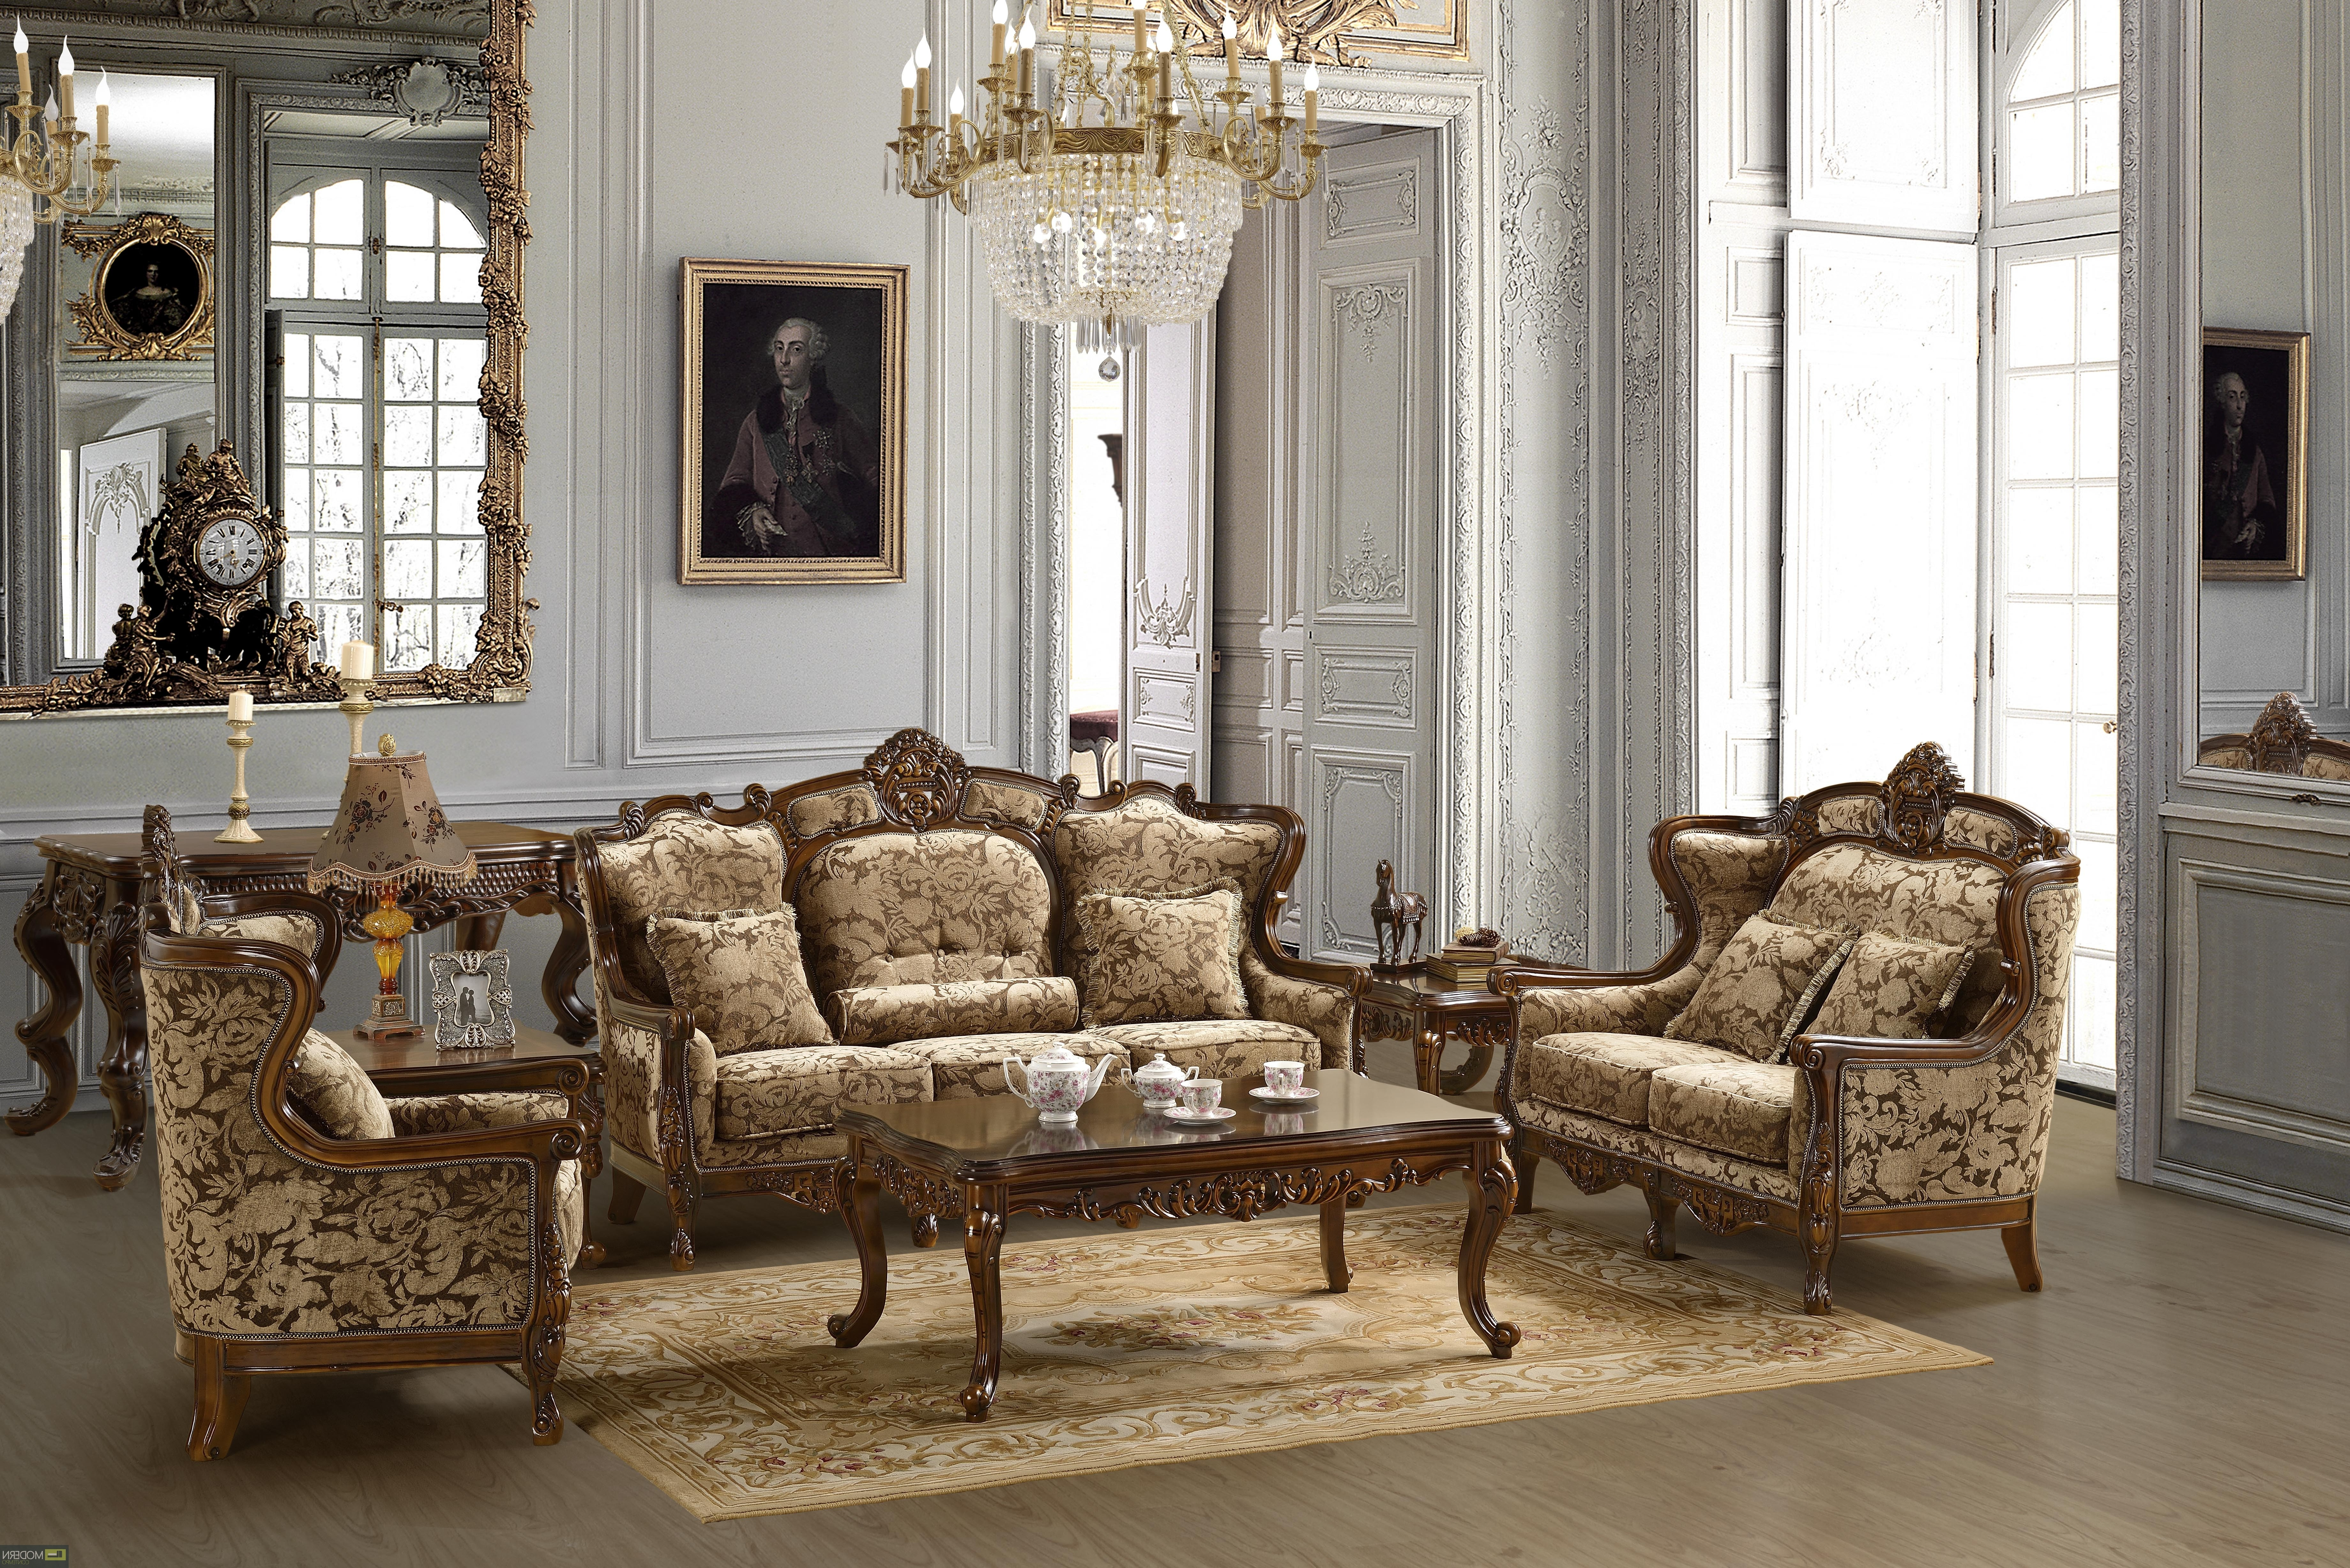 Well Liked Sofa Set Formal Living Room Furniture Mchd839 Pertaining To Traditional Sofas And Chairs (View 5 of 20)